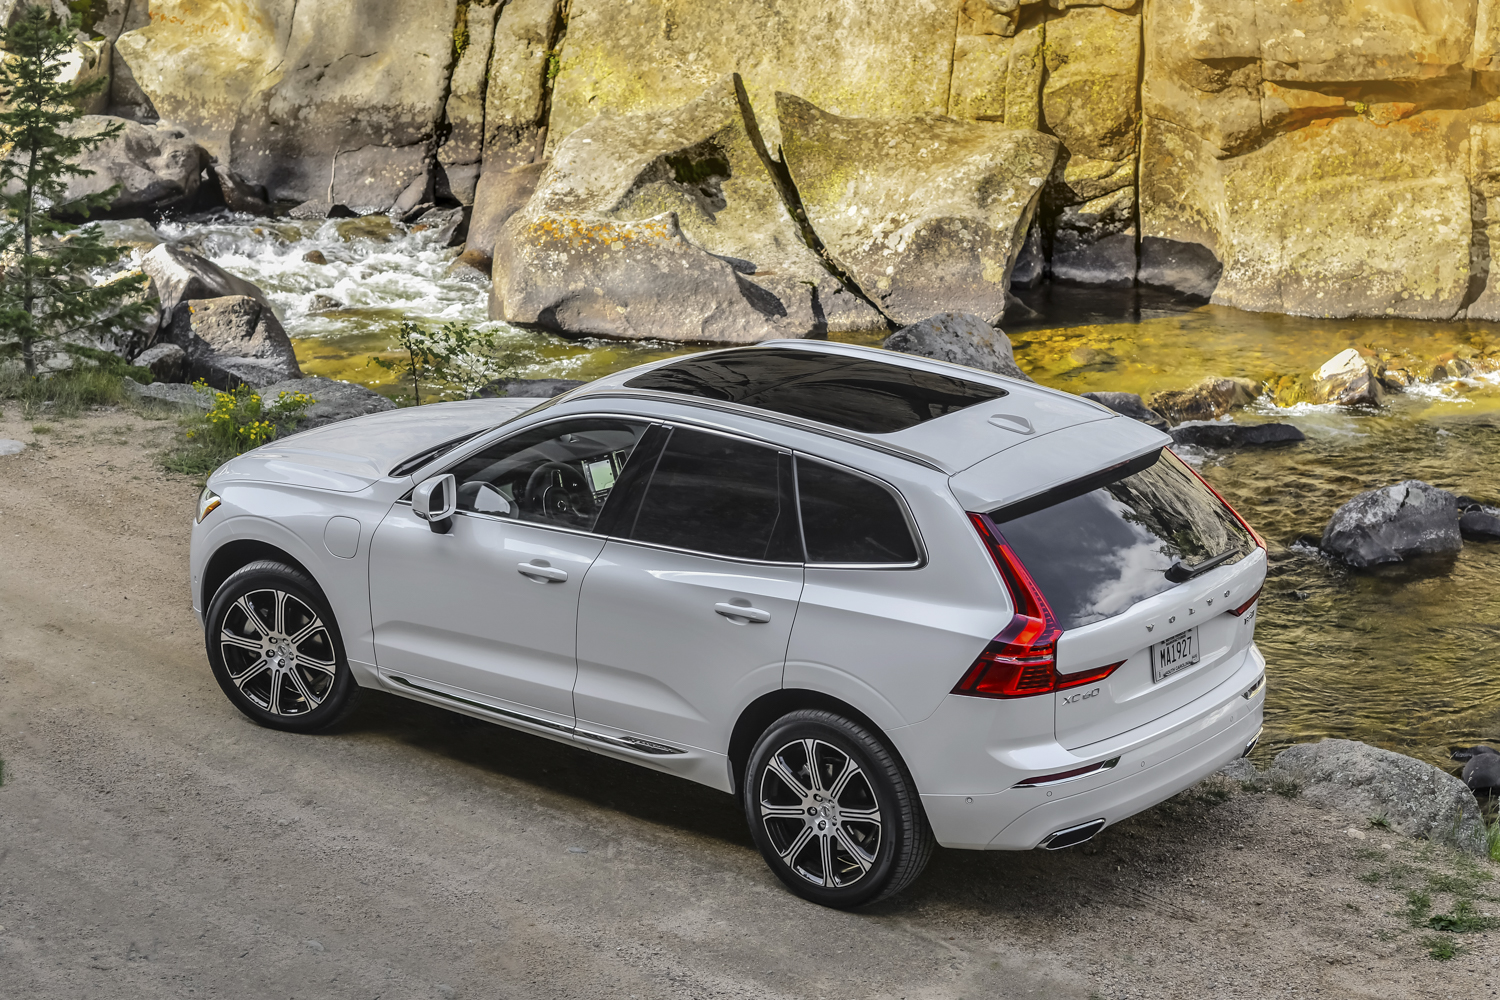 2018 Volvo XC60 T8 First Drive Review | Digital Trends